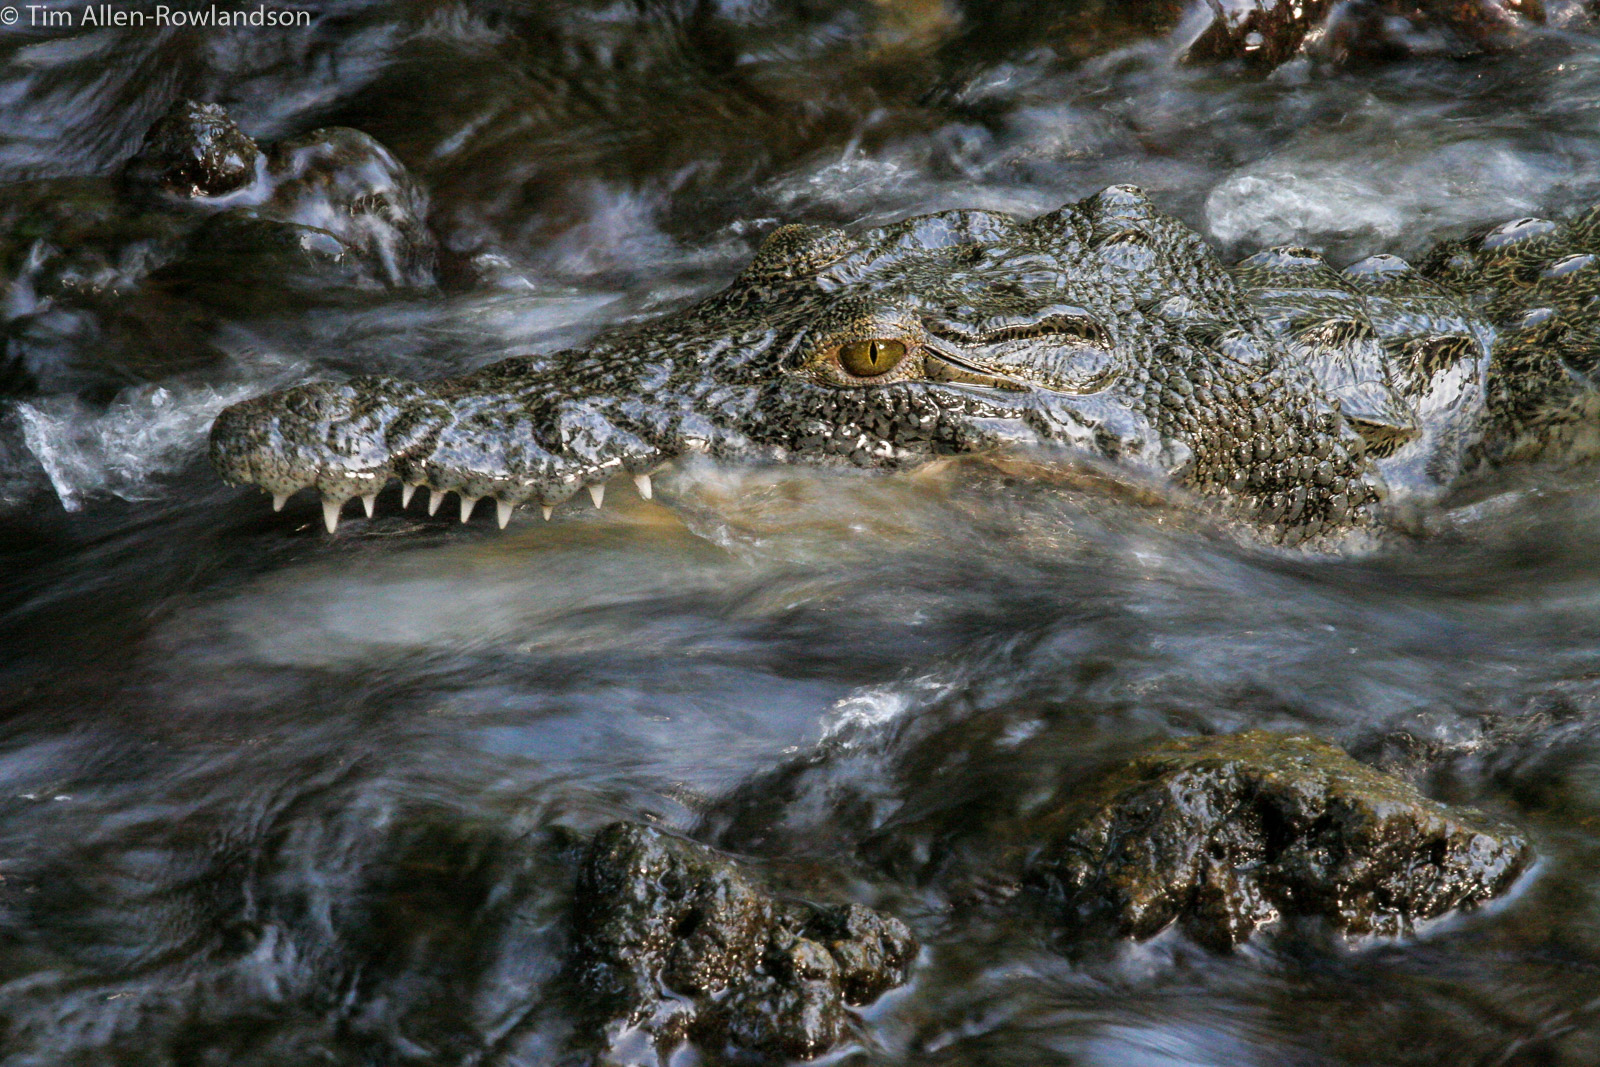 Young crocodile fishing in a shallow stream, Tsavo